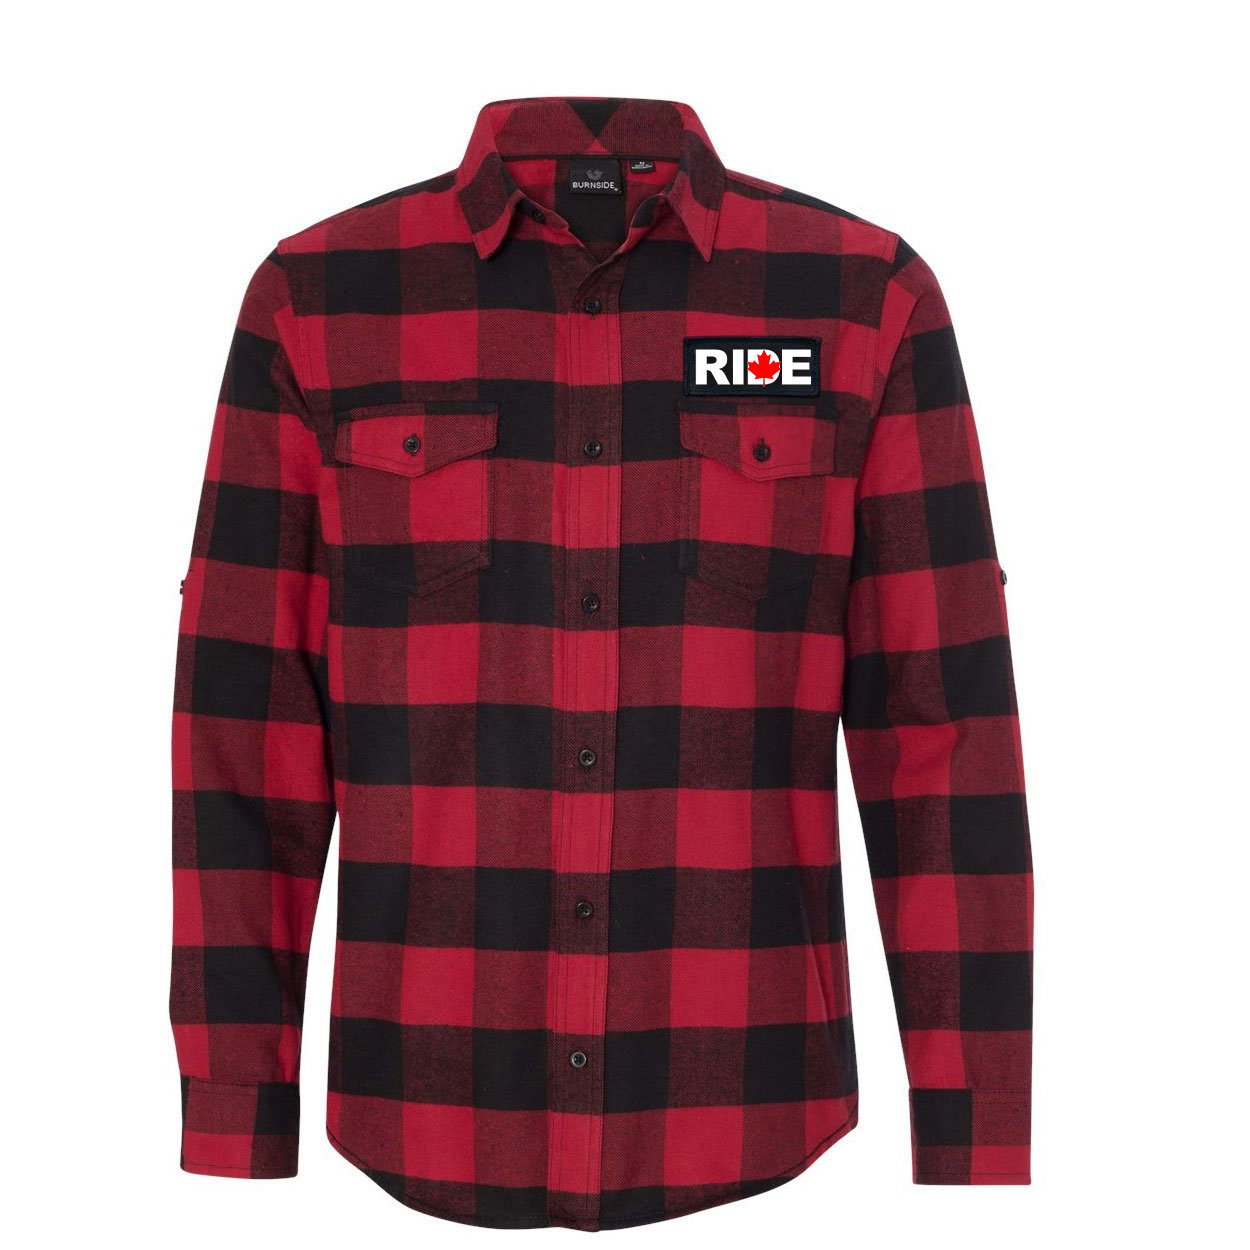 Ride Canada Classic Unisex Long Sleeve Woven Patch Flannel Shirt Red/Black Buffalo (White Logo)